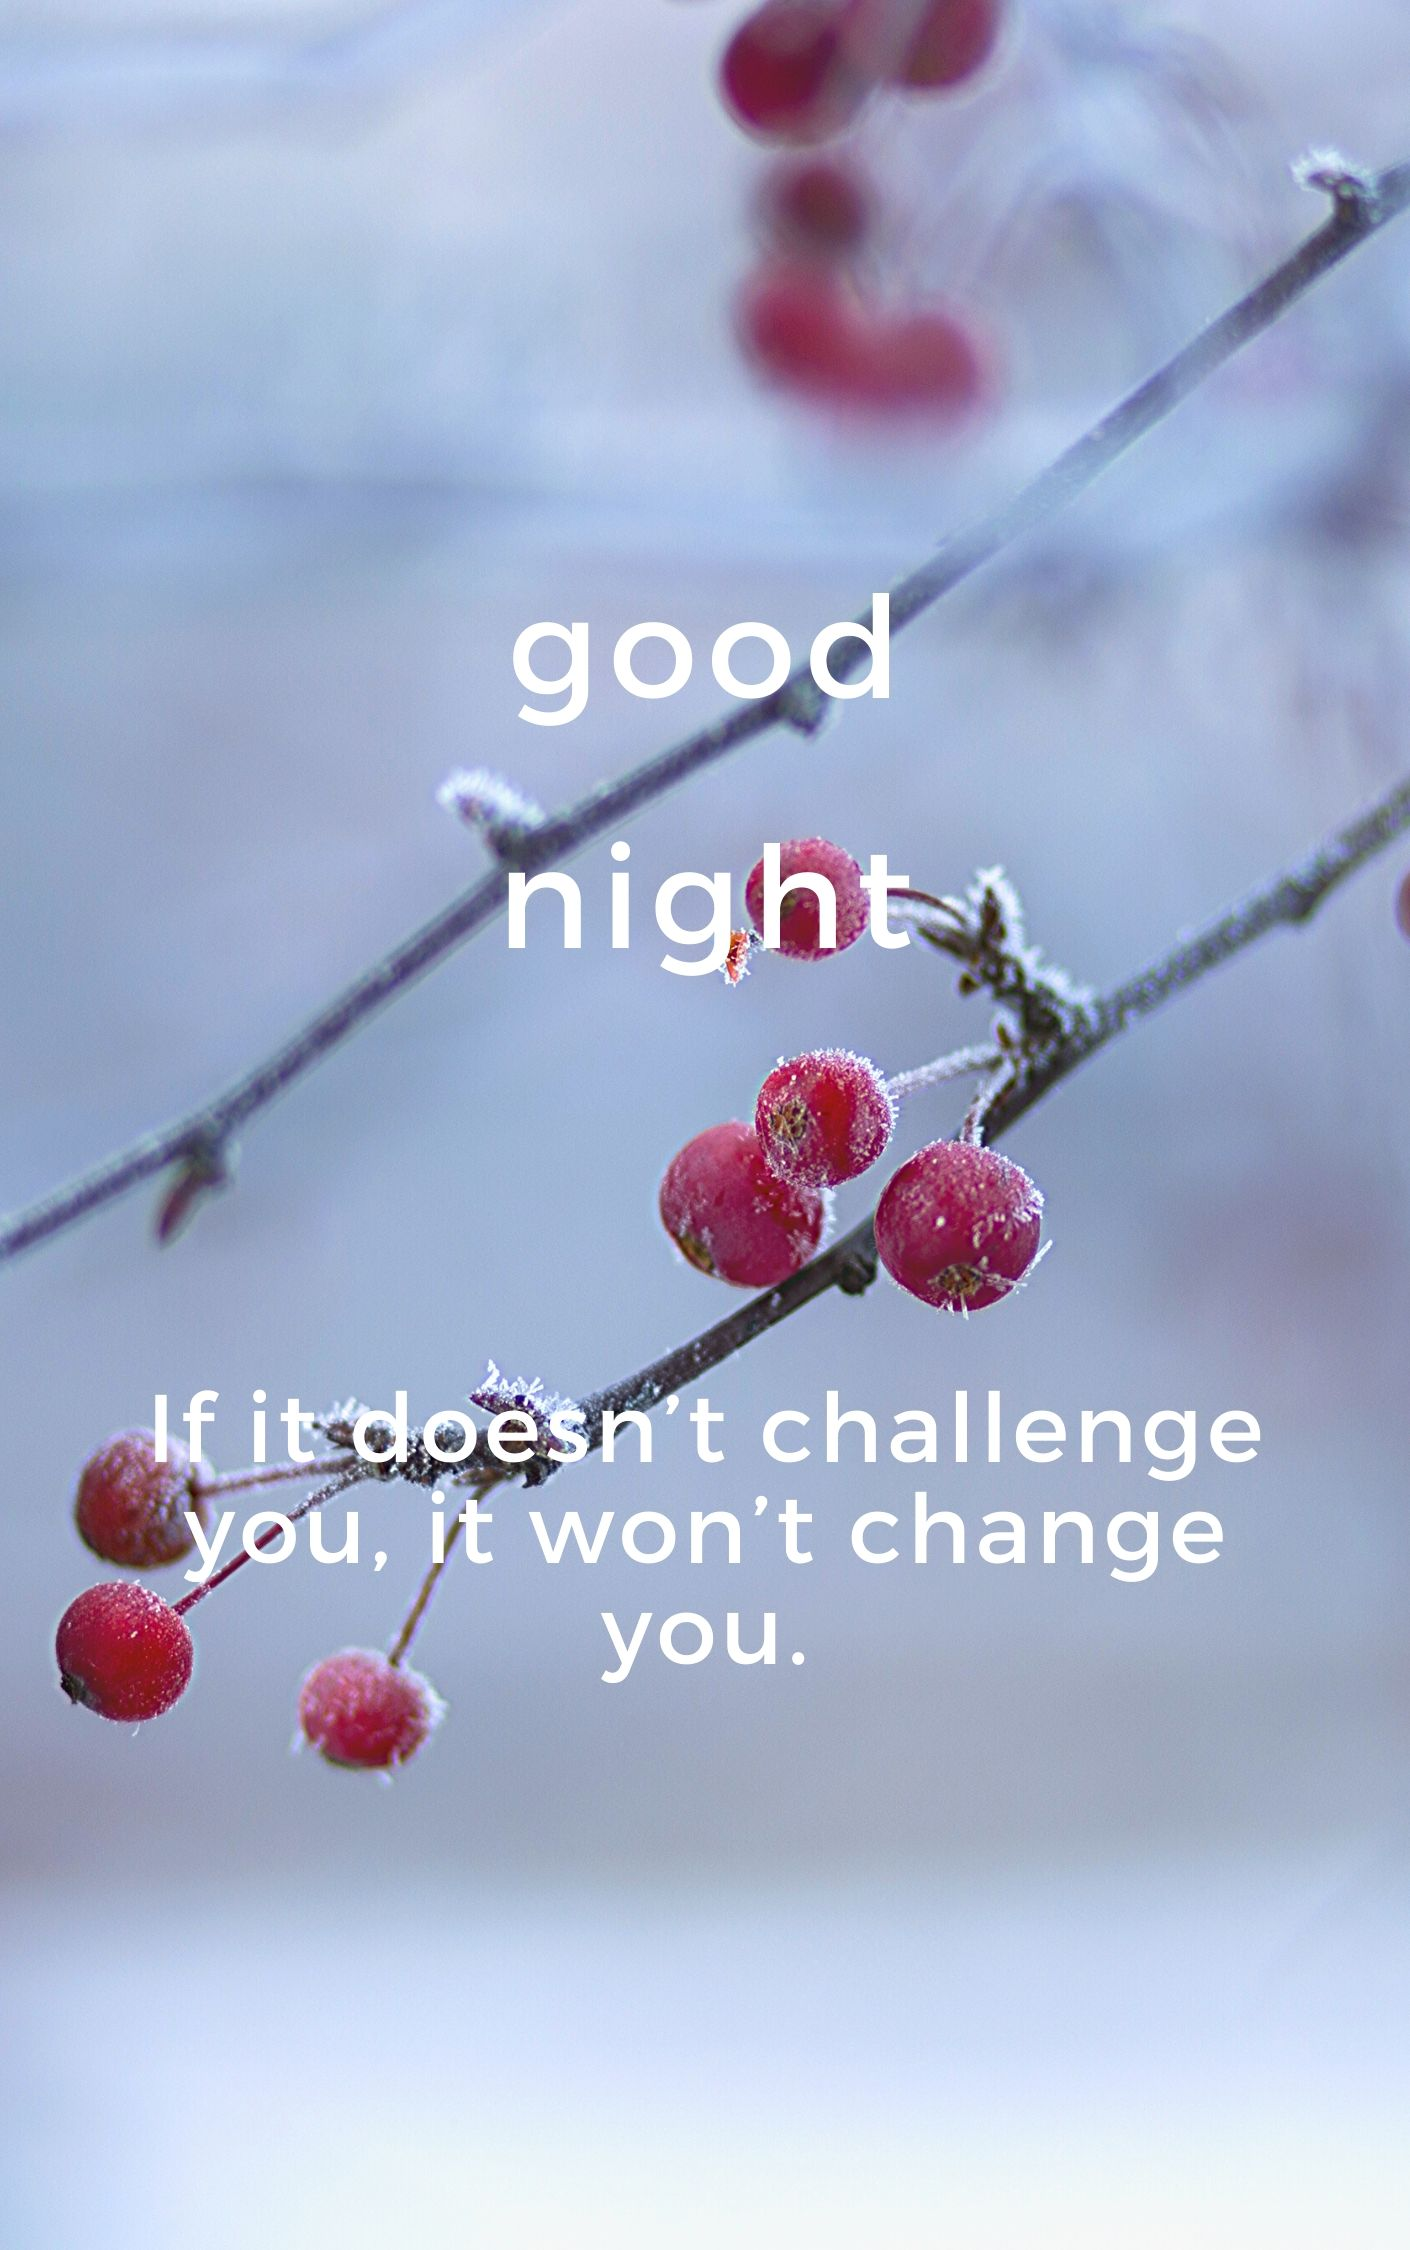 Good Night Quote pic If it doesnt challenge you it wont change you full HD free download.